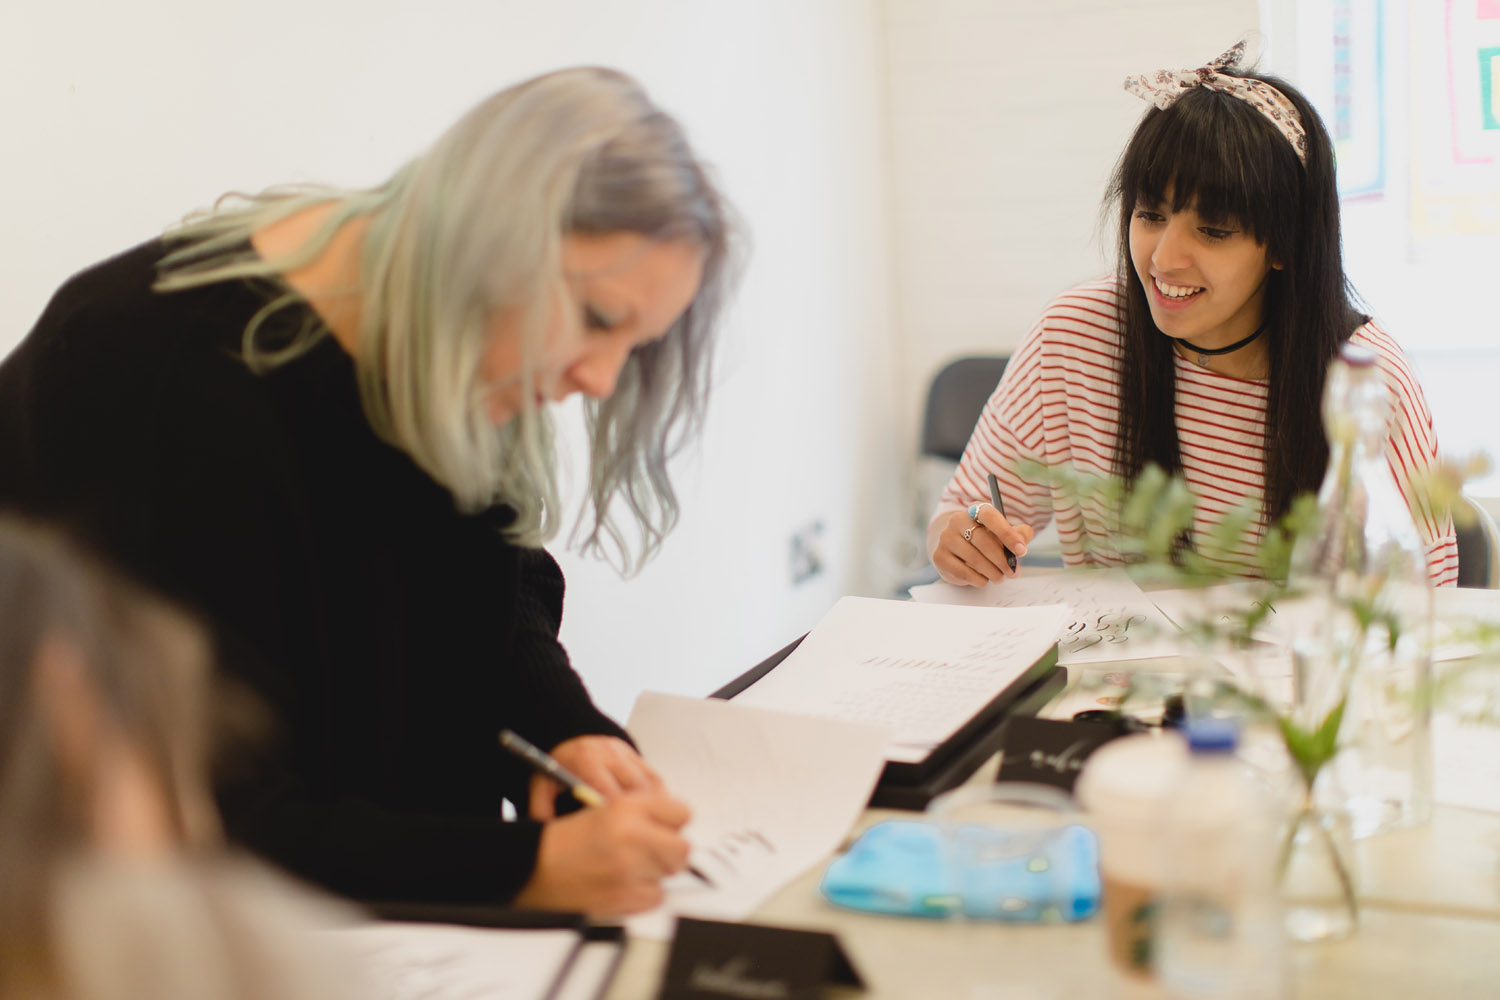 Calligraphy workshop at Manchester Craft and Design Centre – ONE LAST TIME!